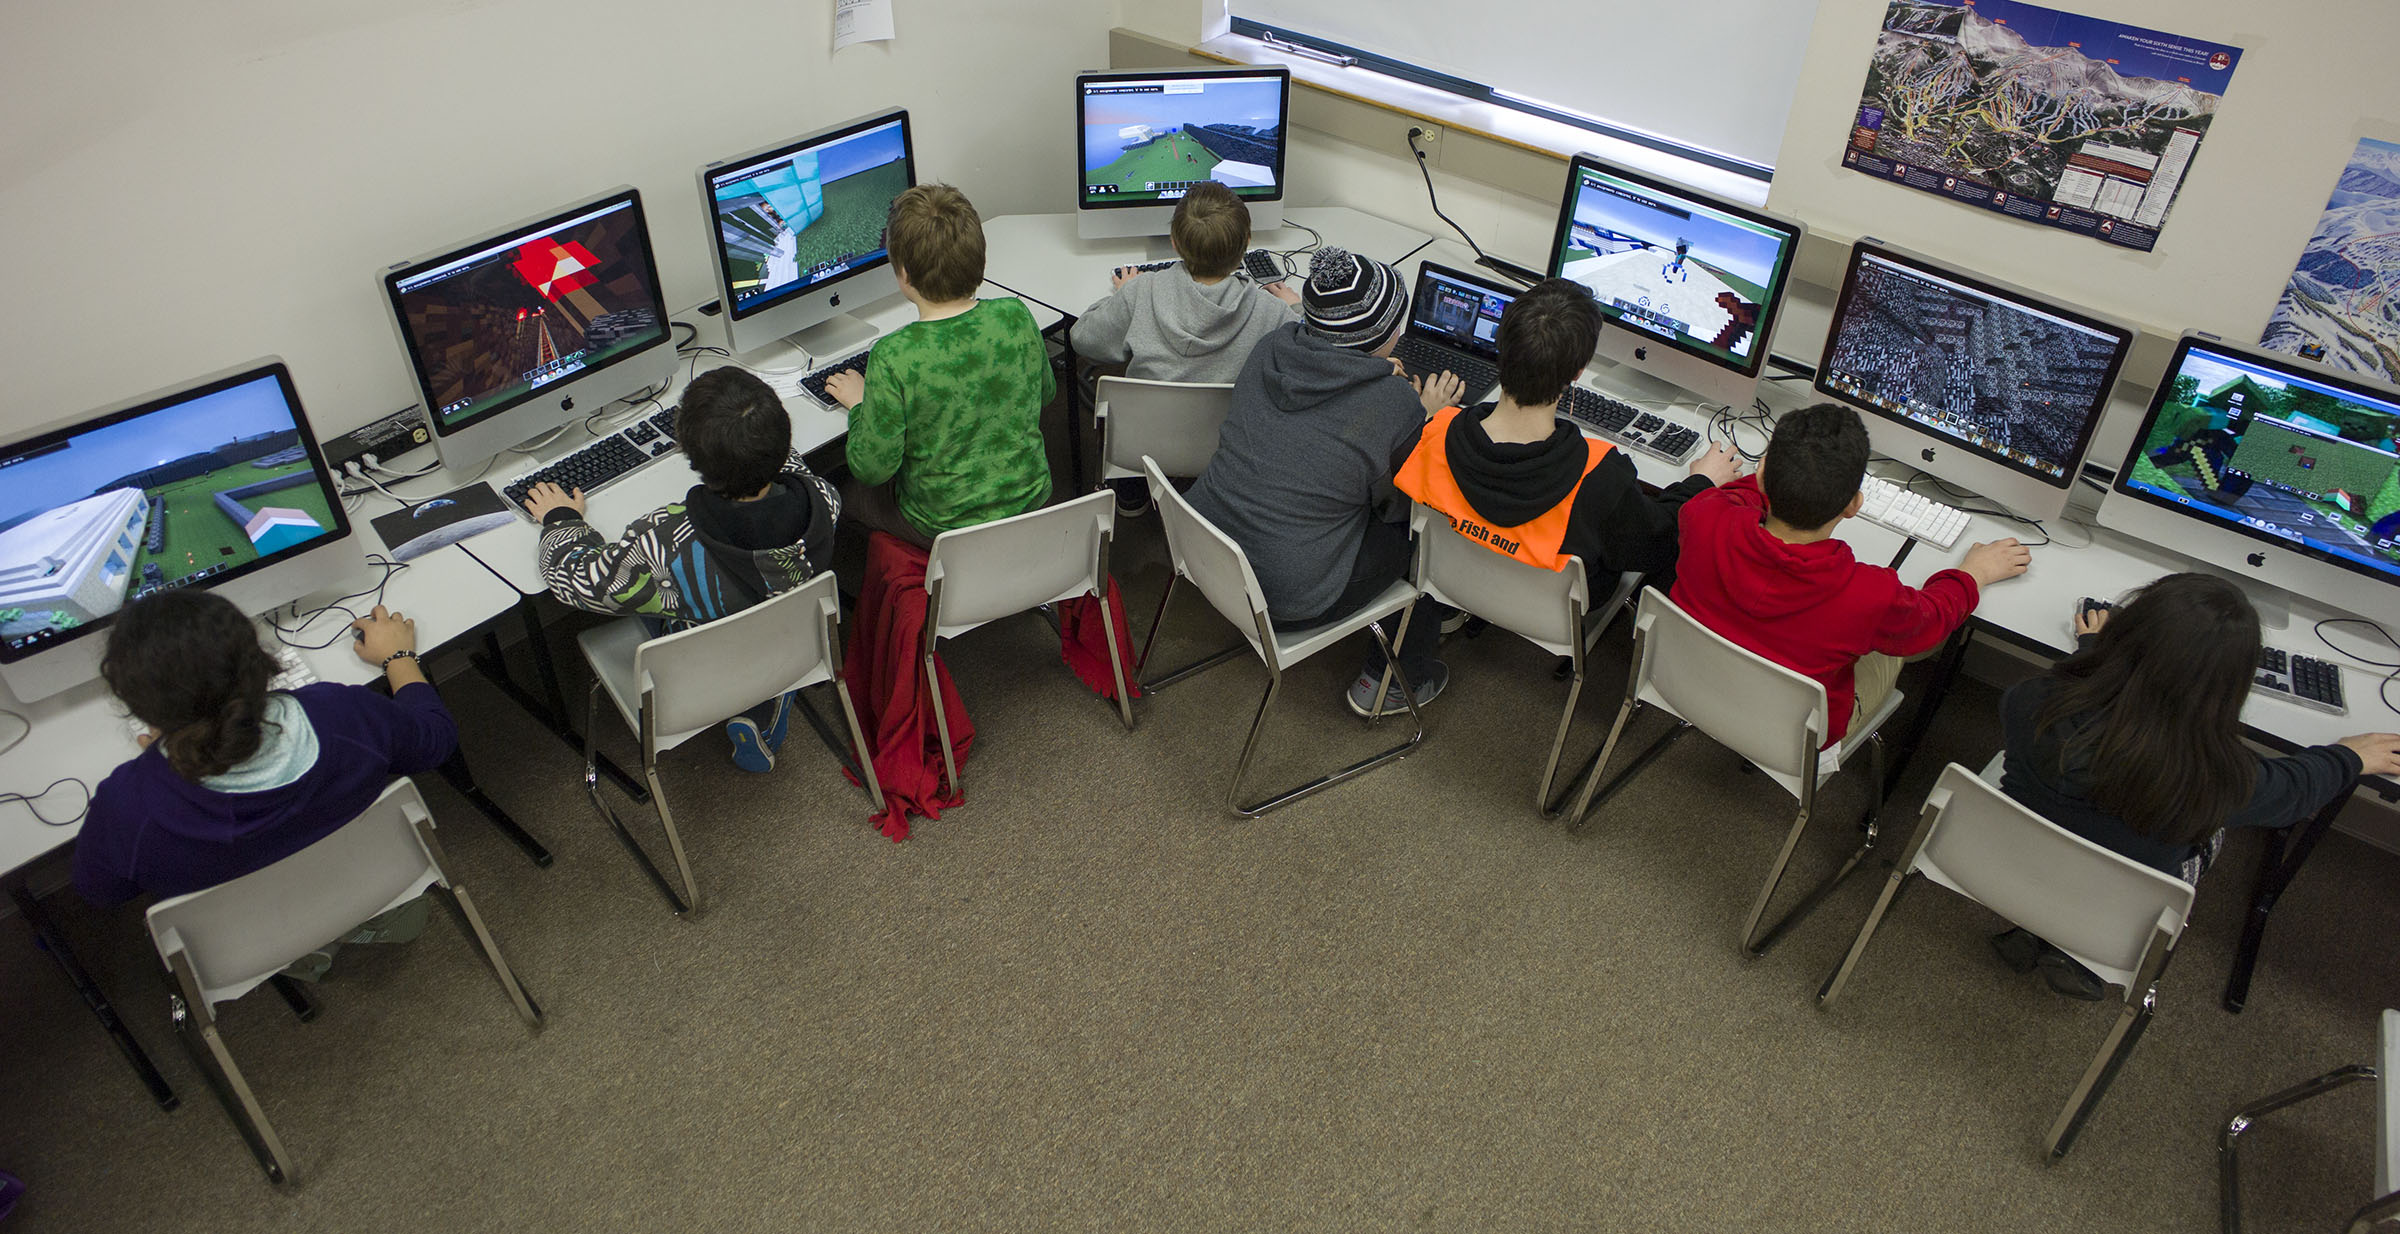 how to buy minecraft for free on computer